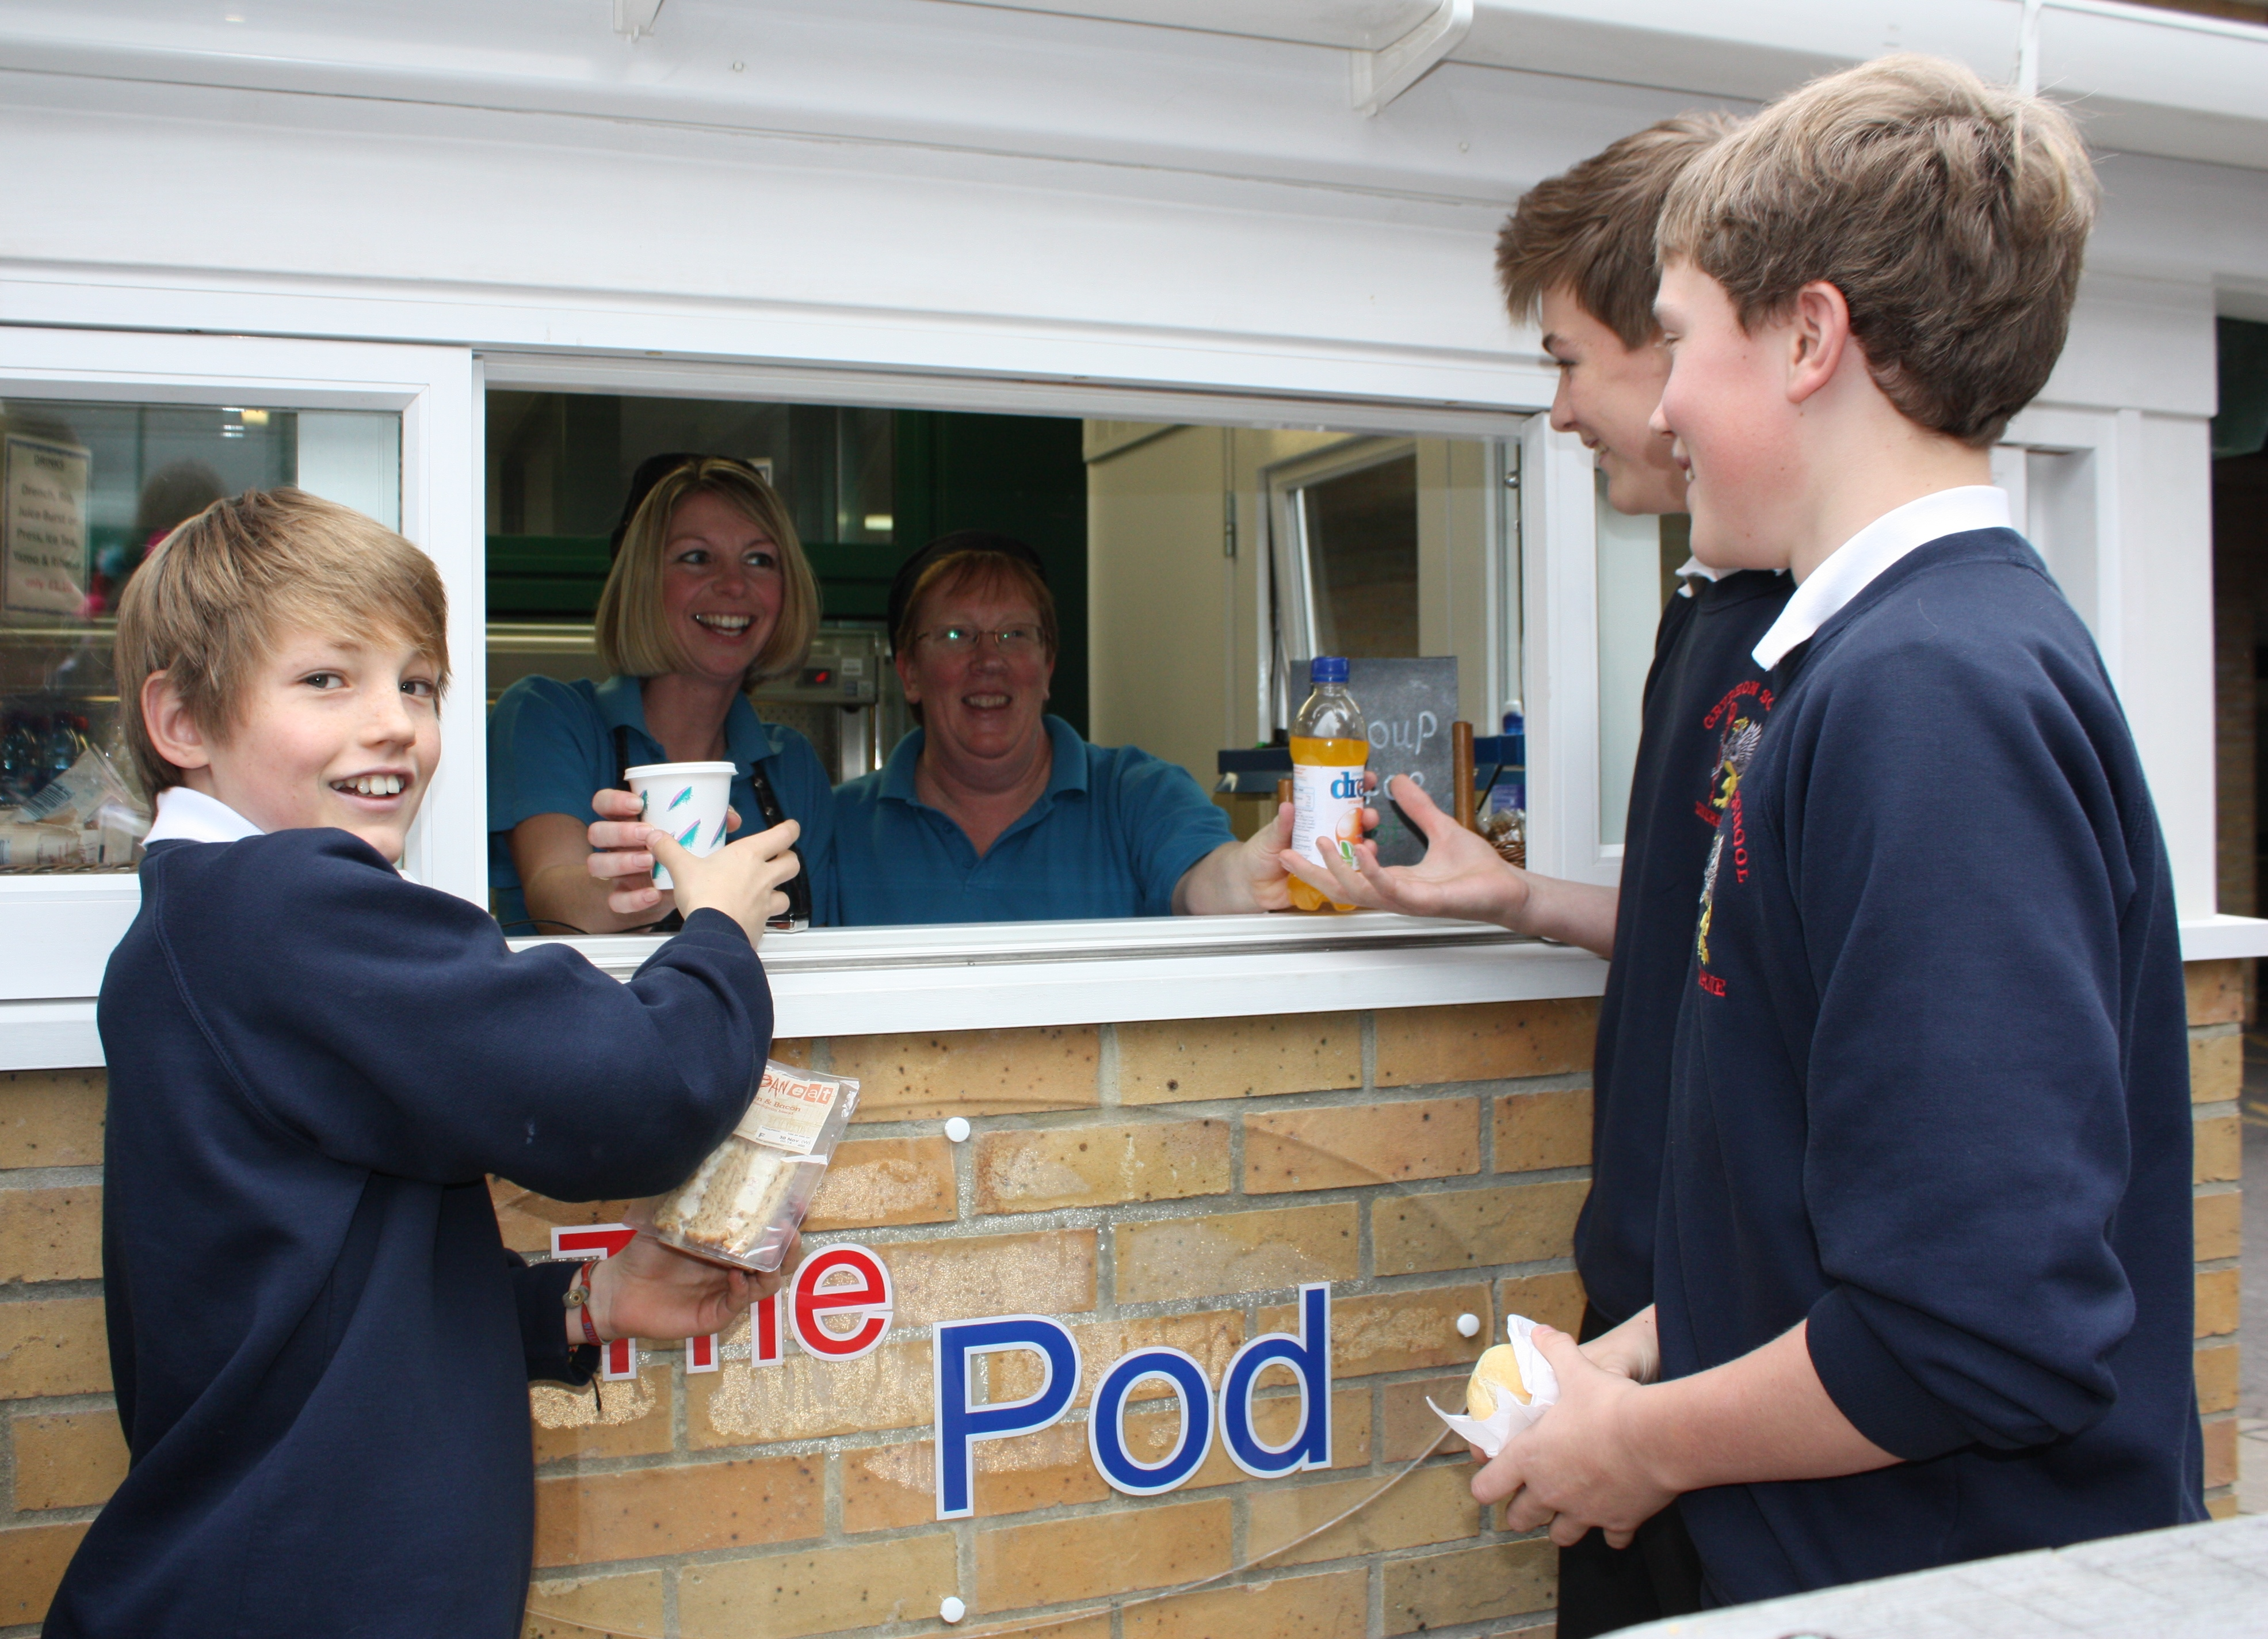 Casper Barker, Gabriel Pickin and Jasper Hodgson from Year 8 buying lunch at The Pod